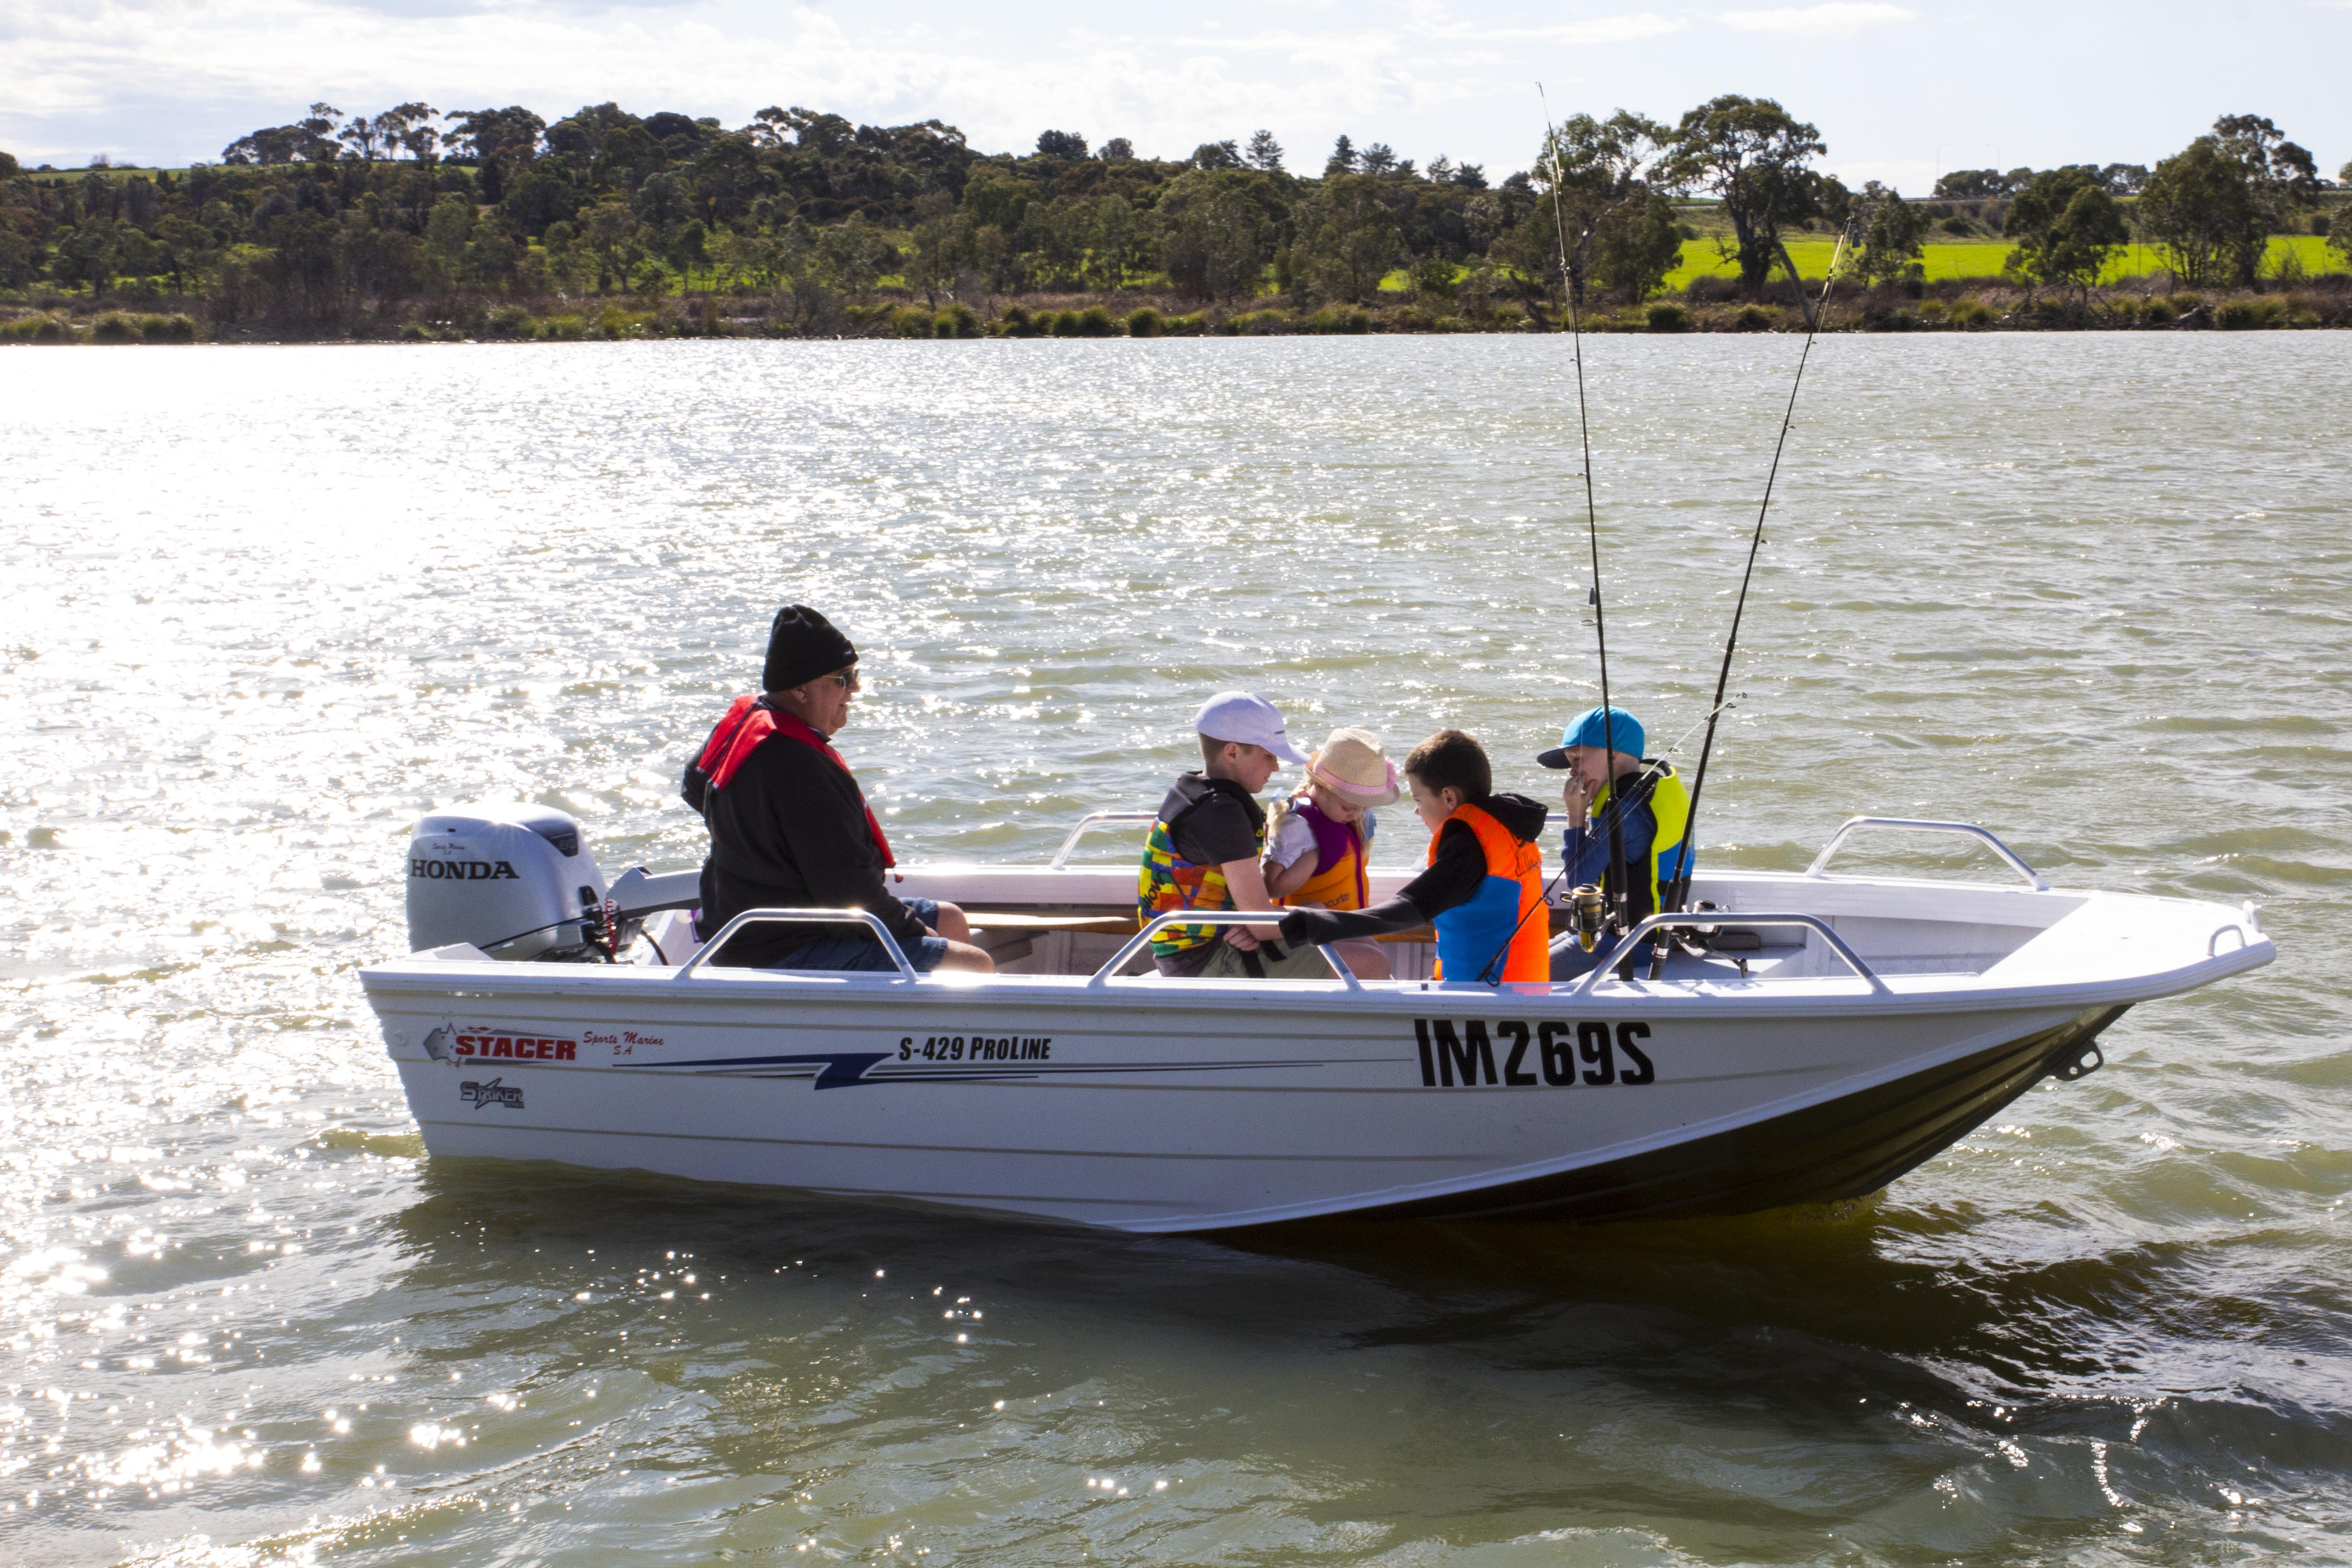 A small boat on the water. Passengers include one adilt and five childre. All are waering life jackets and there are three fishing rods visible.